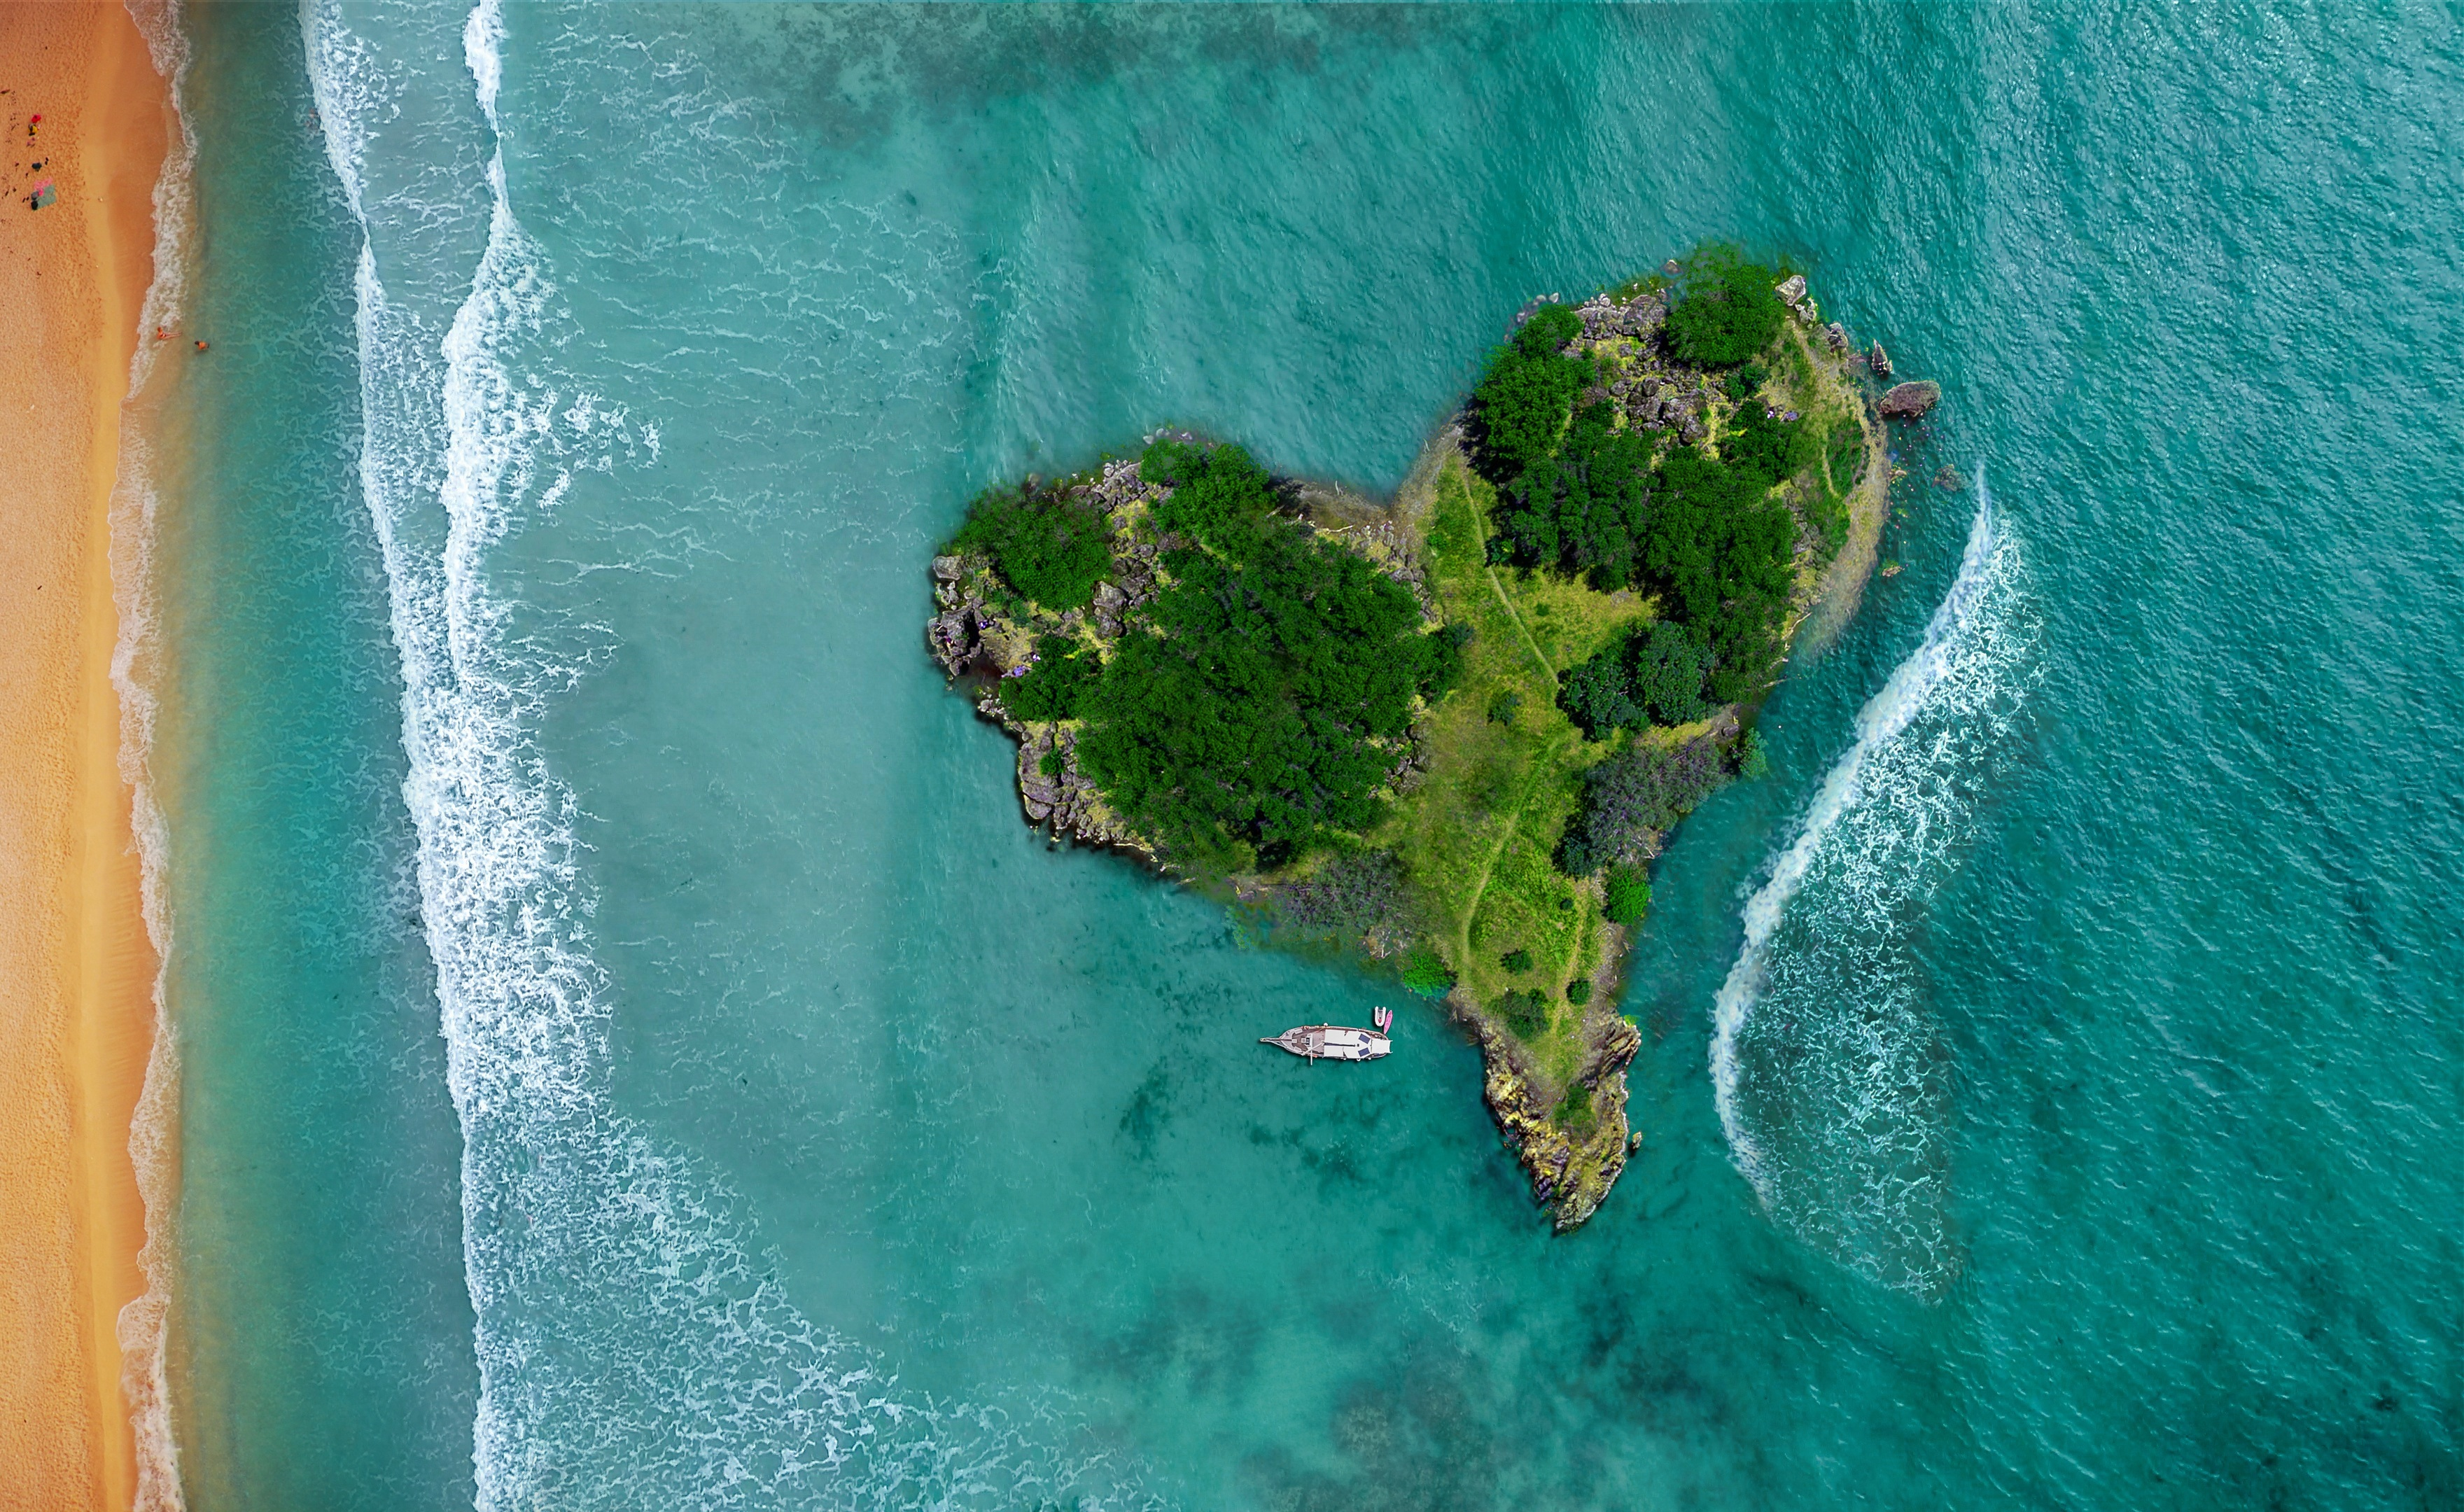 157118 download wallpaper Love, View From Above, Ocean, Island, Heart screensavers and pictures for free